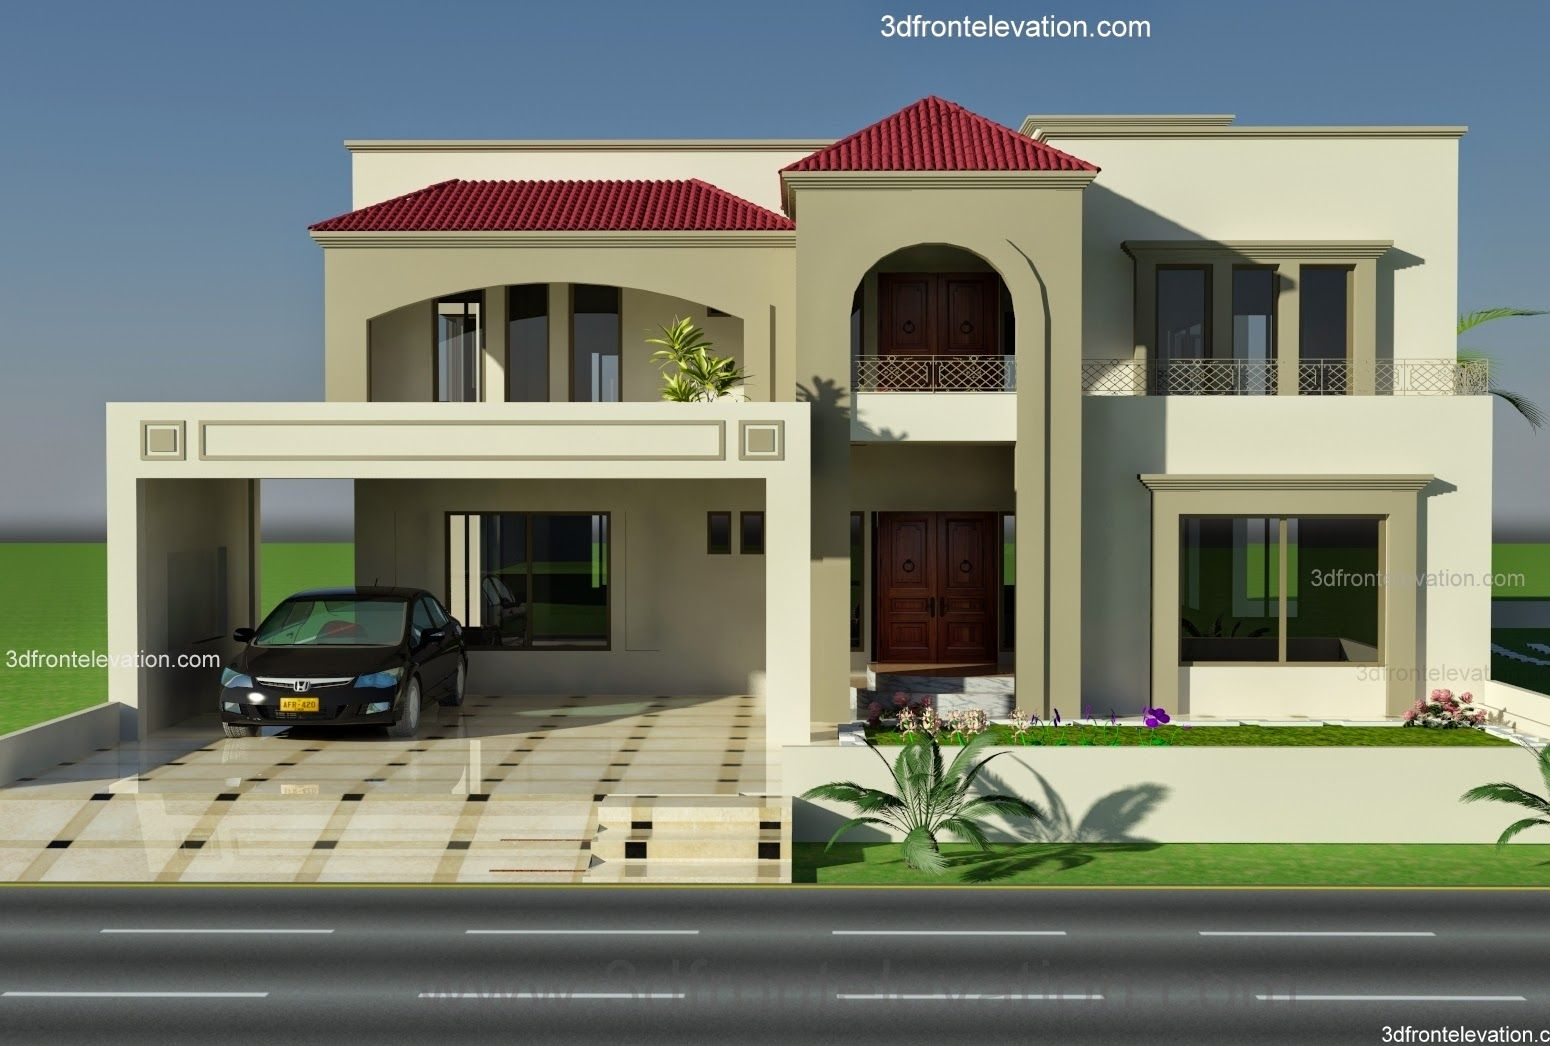 1 kanal plot house design europen style in bahria town for Pakistani new home designs exterior views